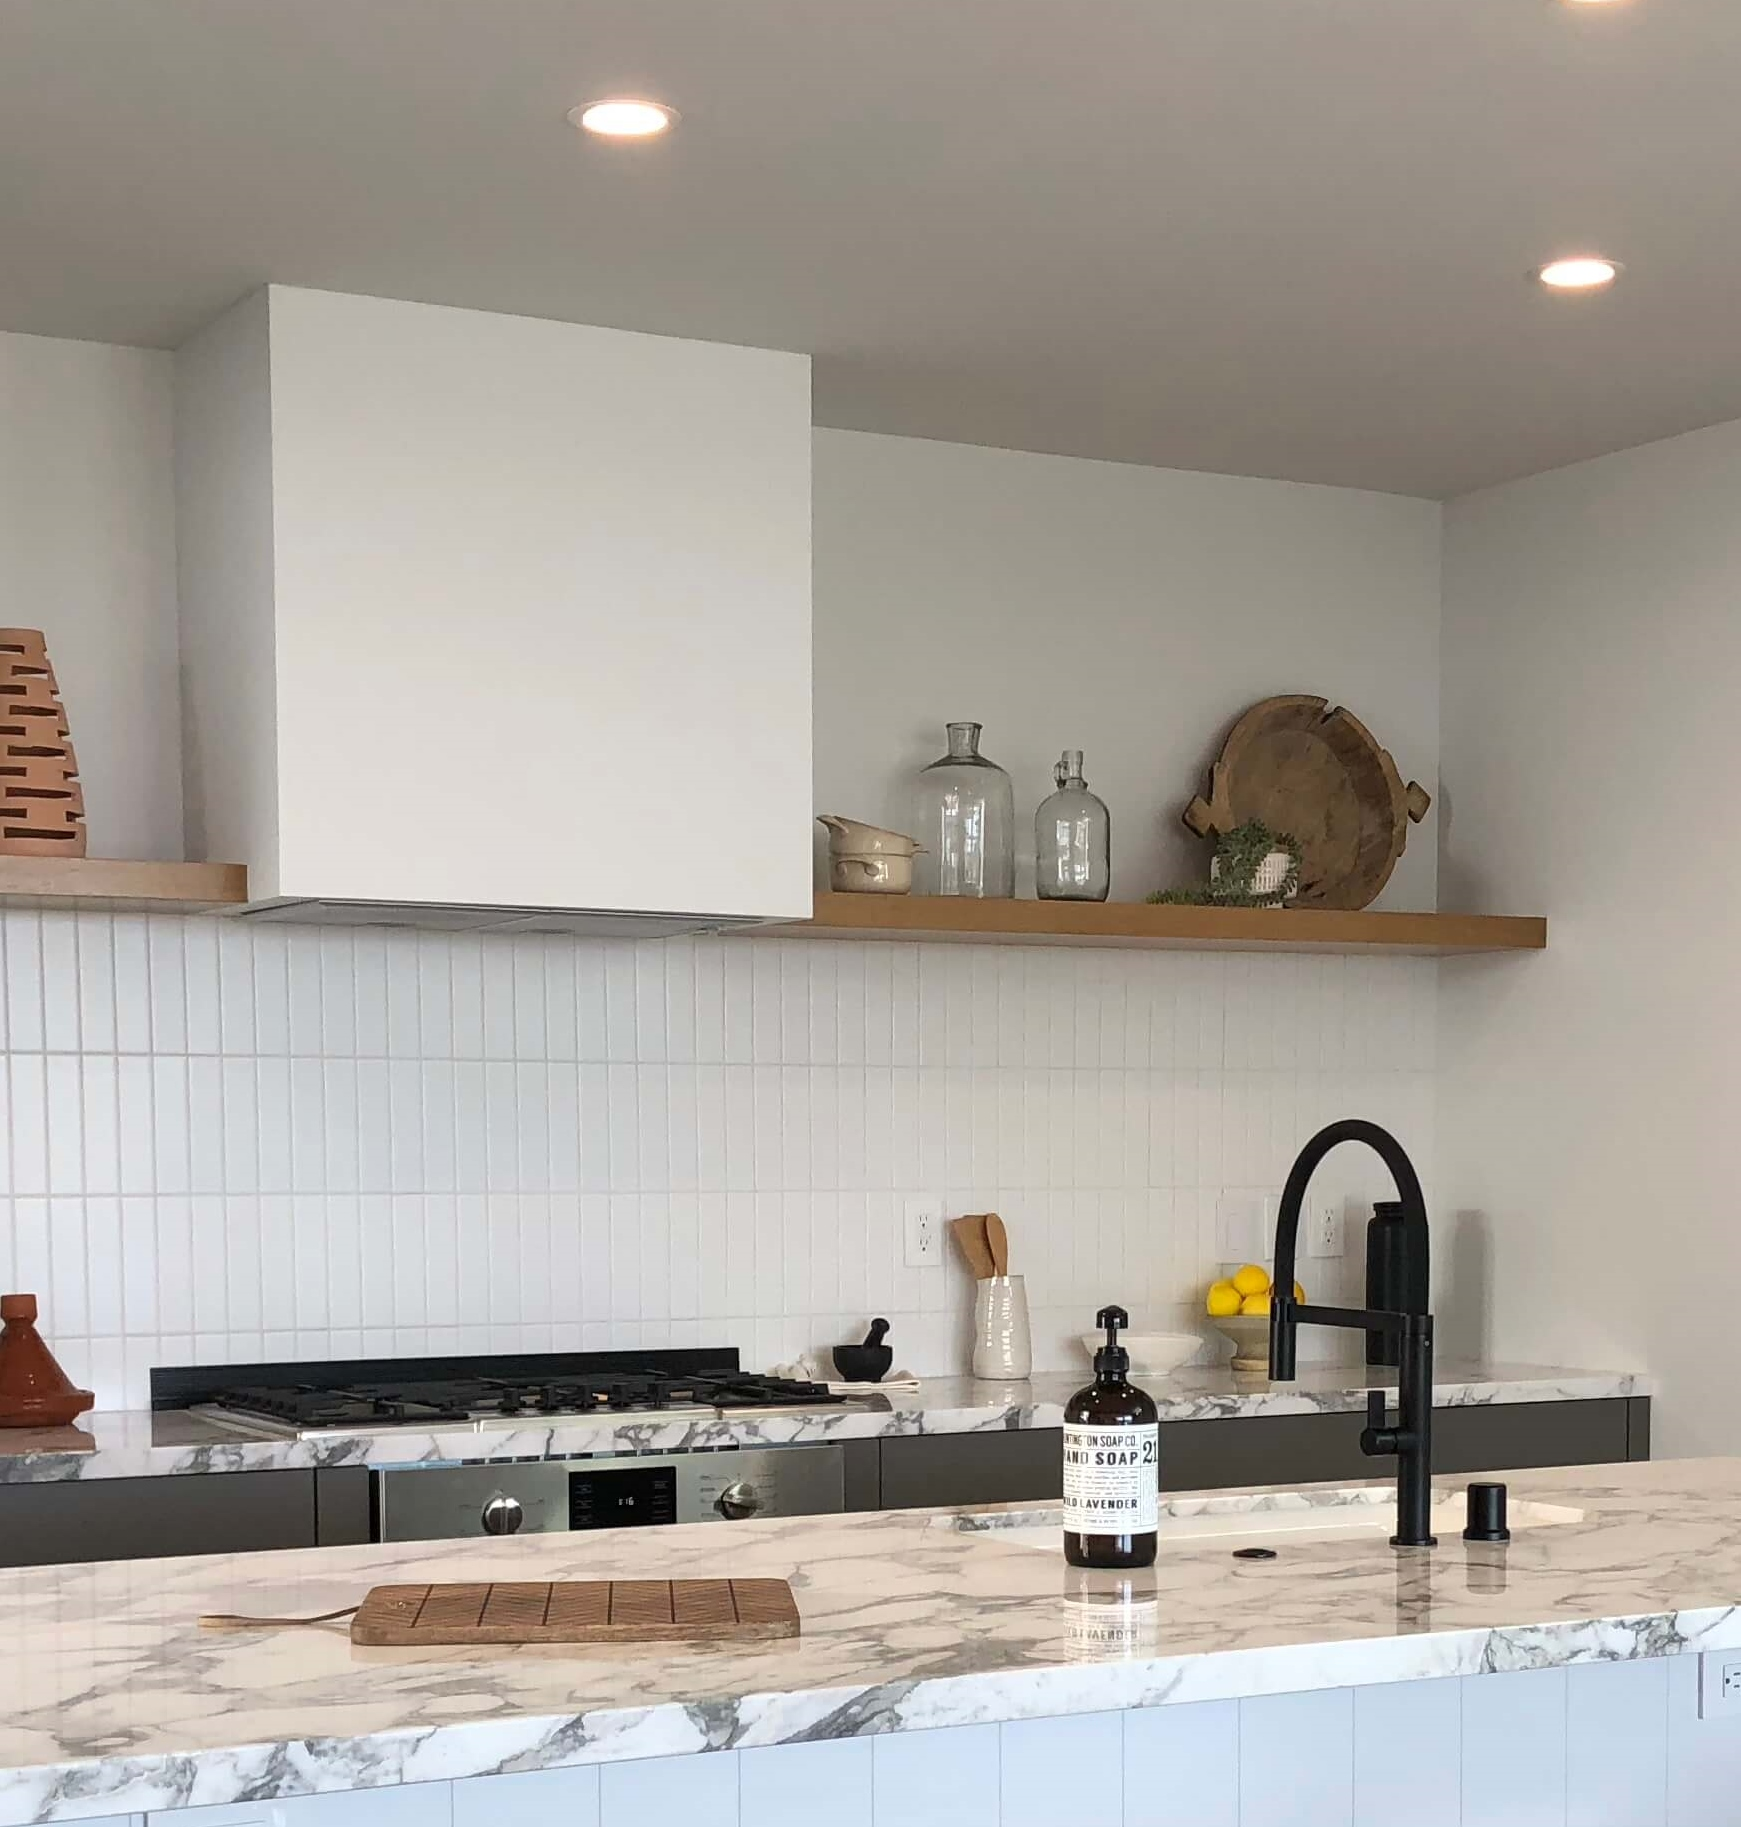 No side splash in this kitchen designed by CHA:COL Architects seen in  Dwell on Design's home tours